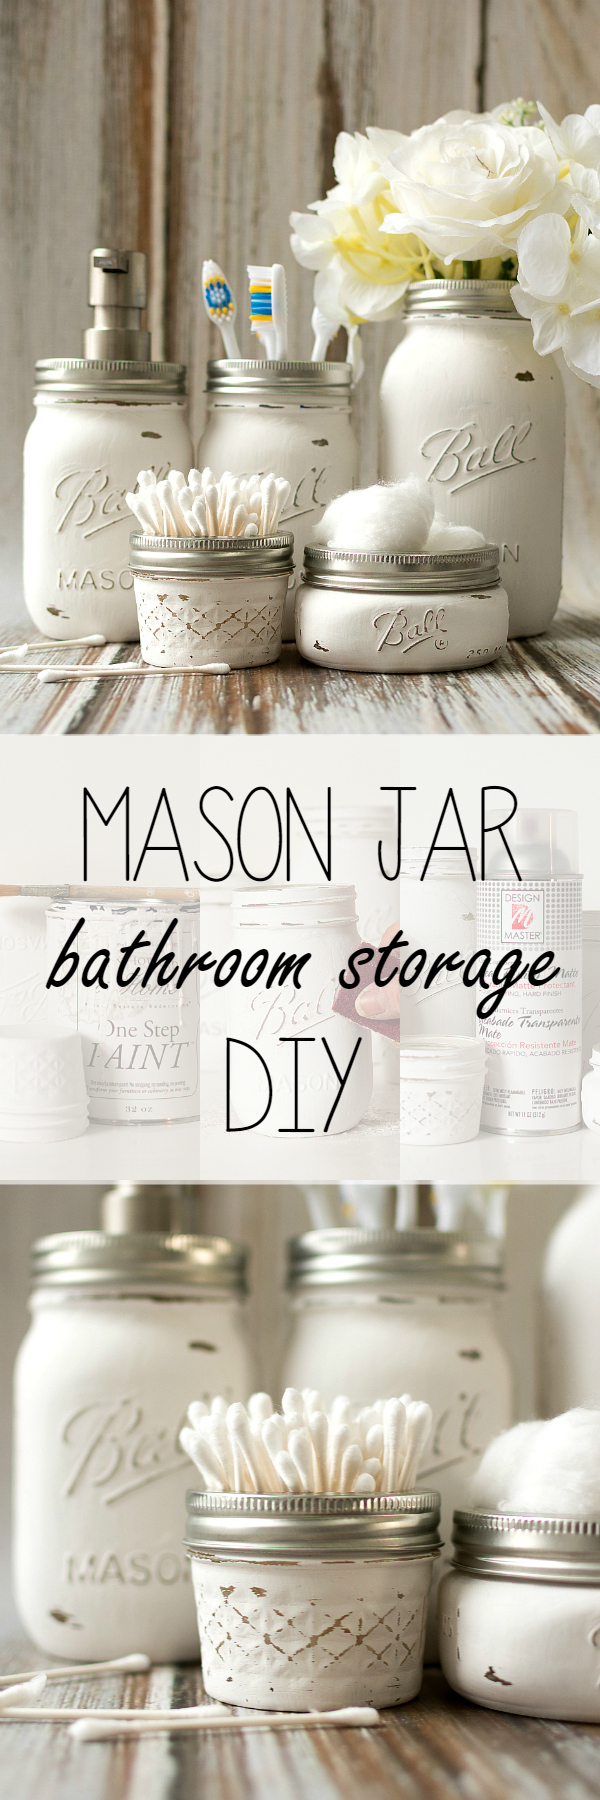 Bathroom Storage Jar Ideas : Mason jar bathroom storage accessories